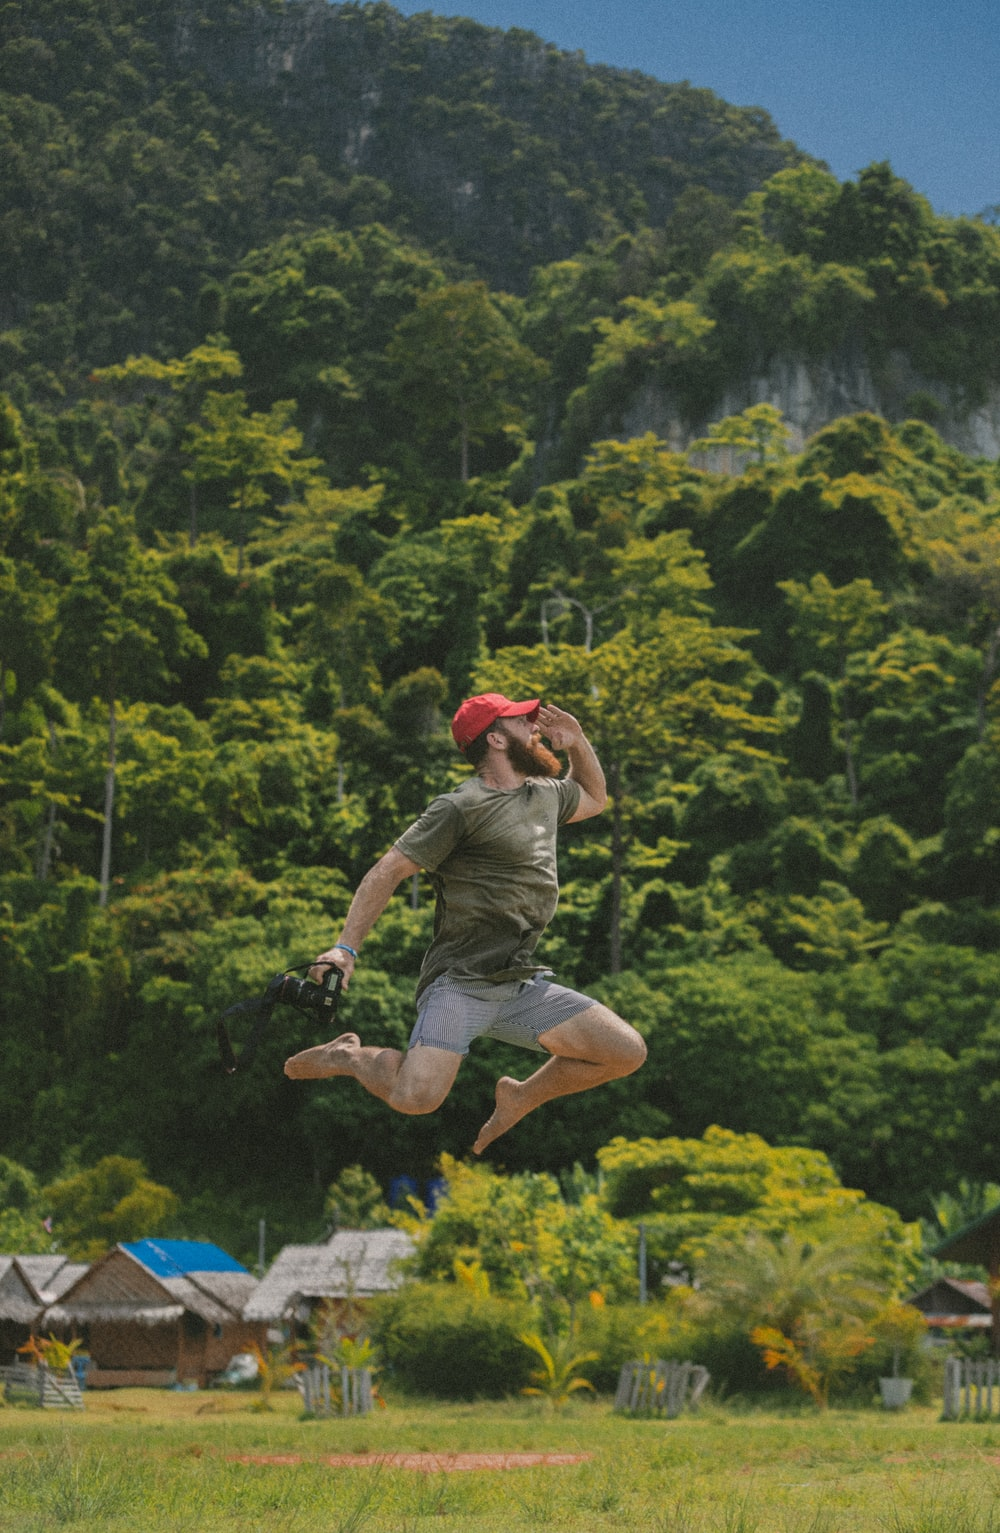 man in gray top jumping